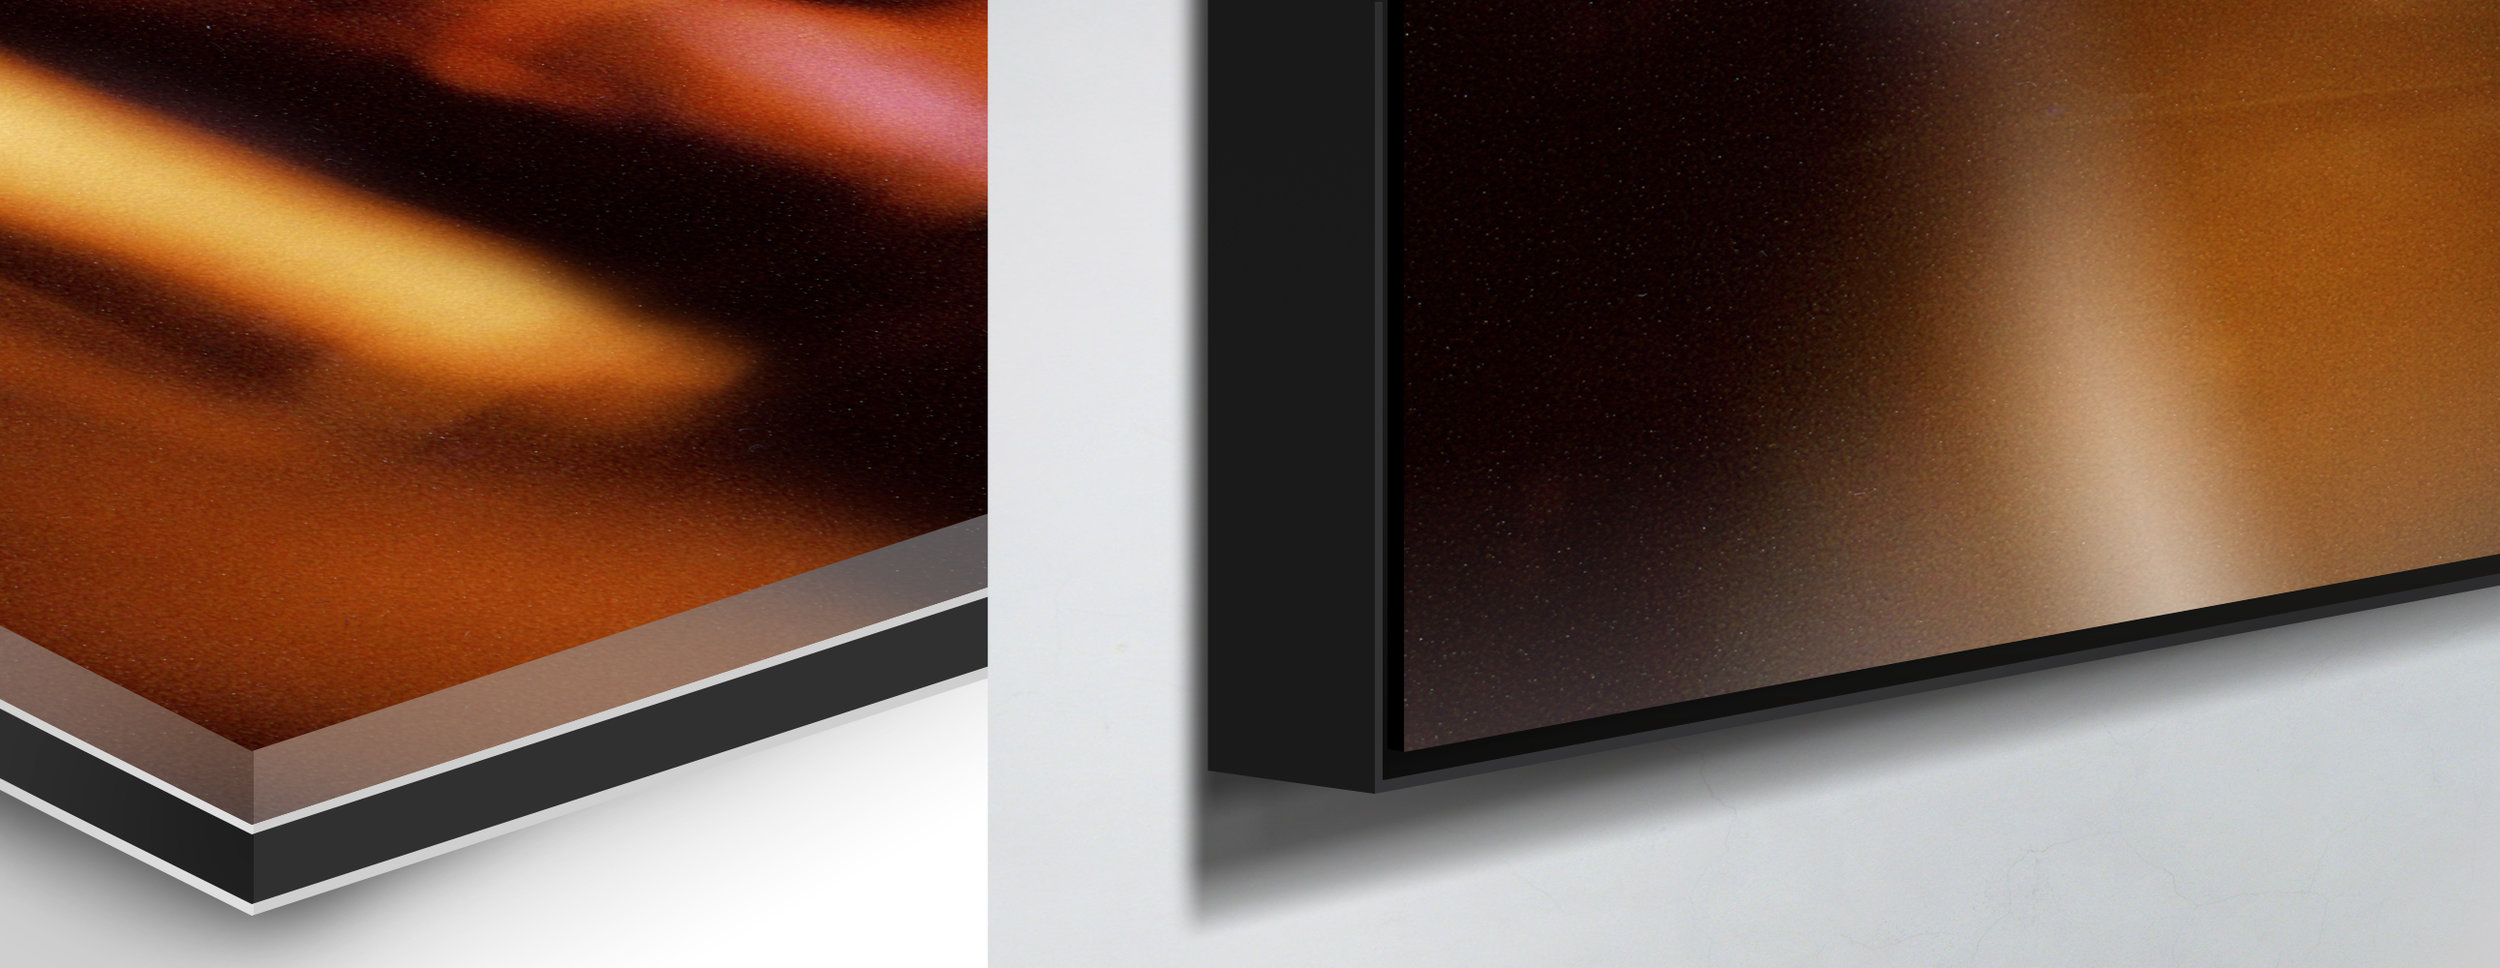 Detail: left - close up of print encased in aluminium and acrylic glass / right - close up of frame